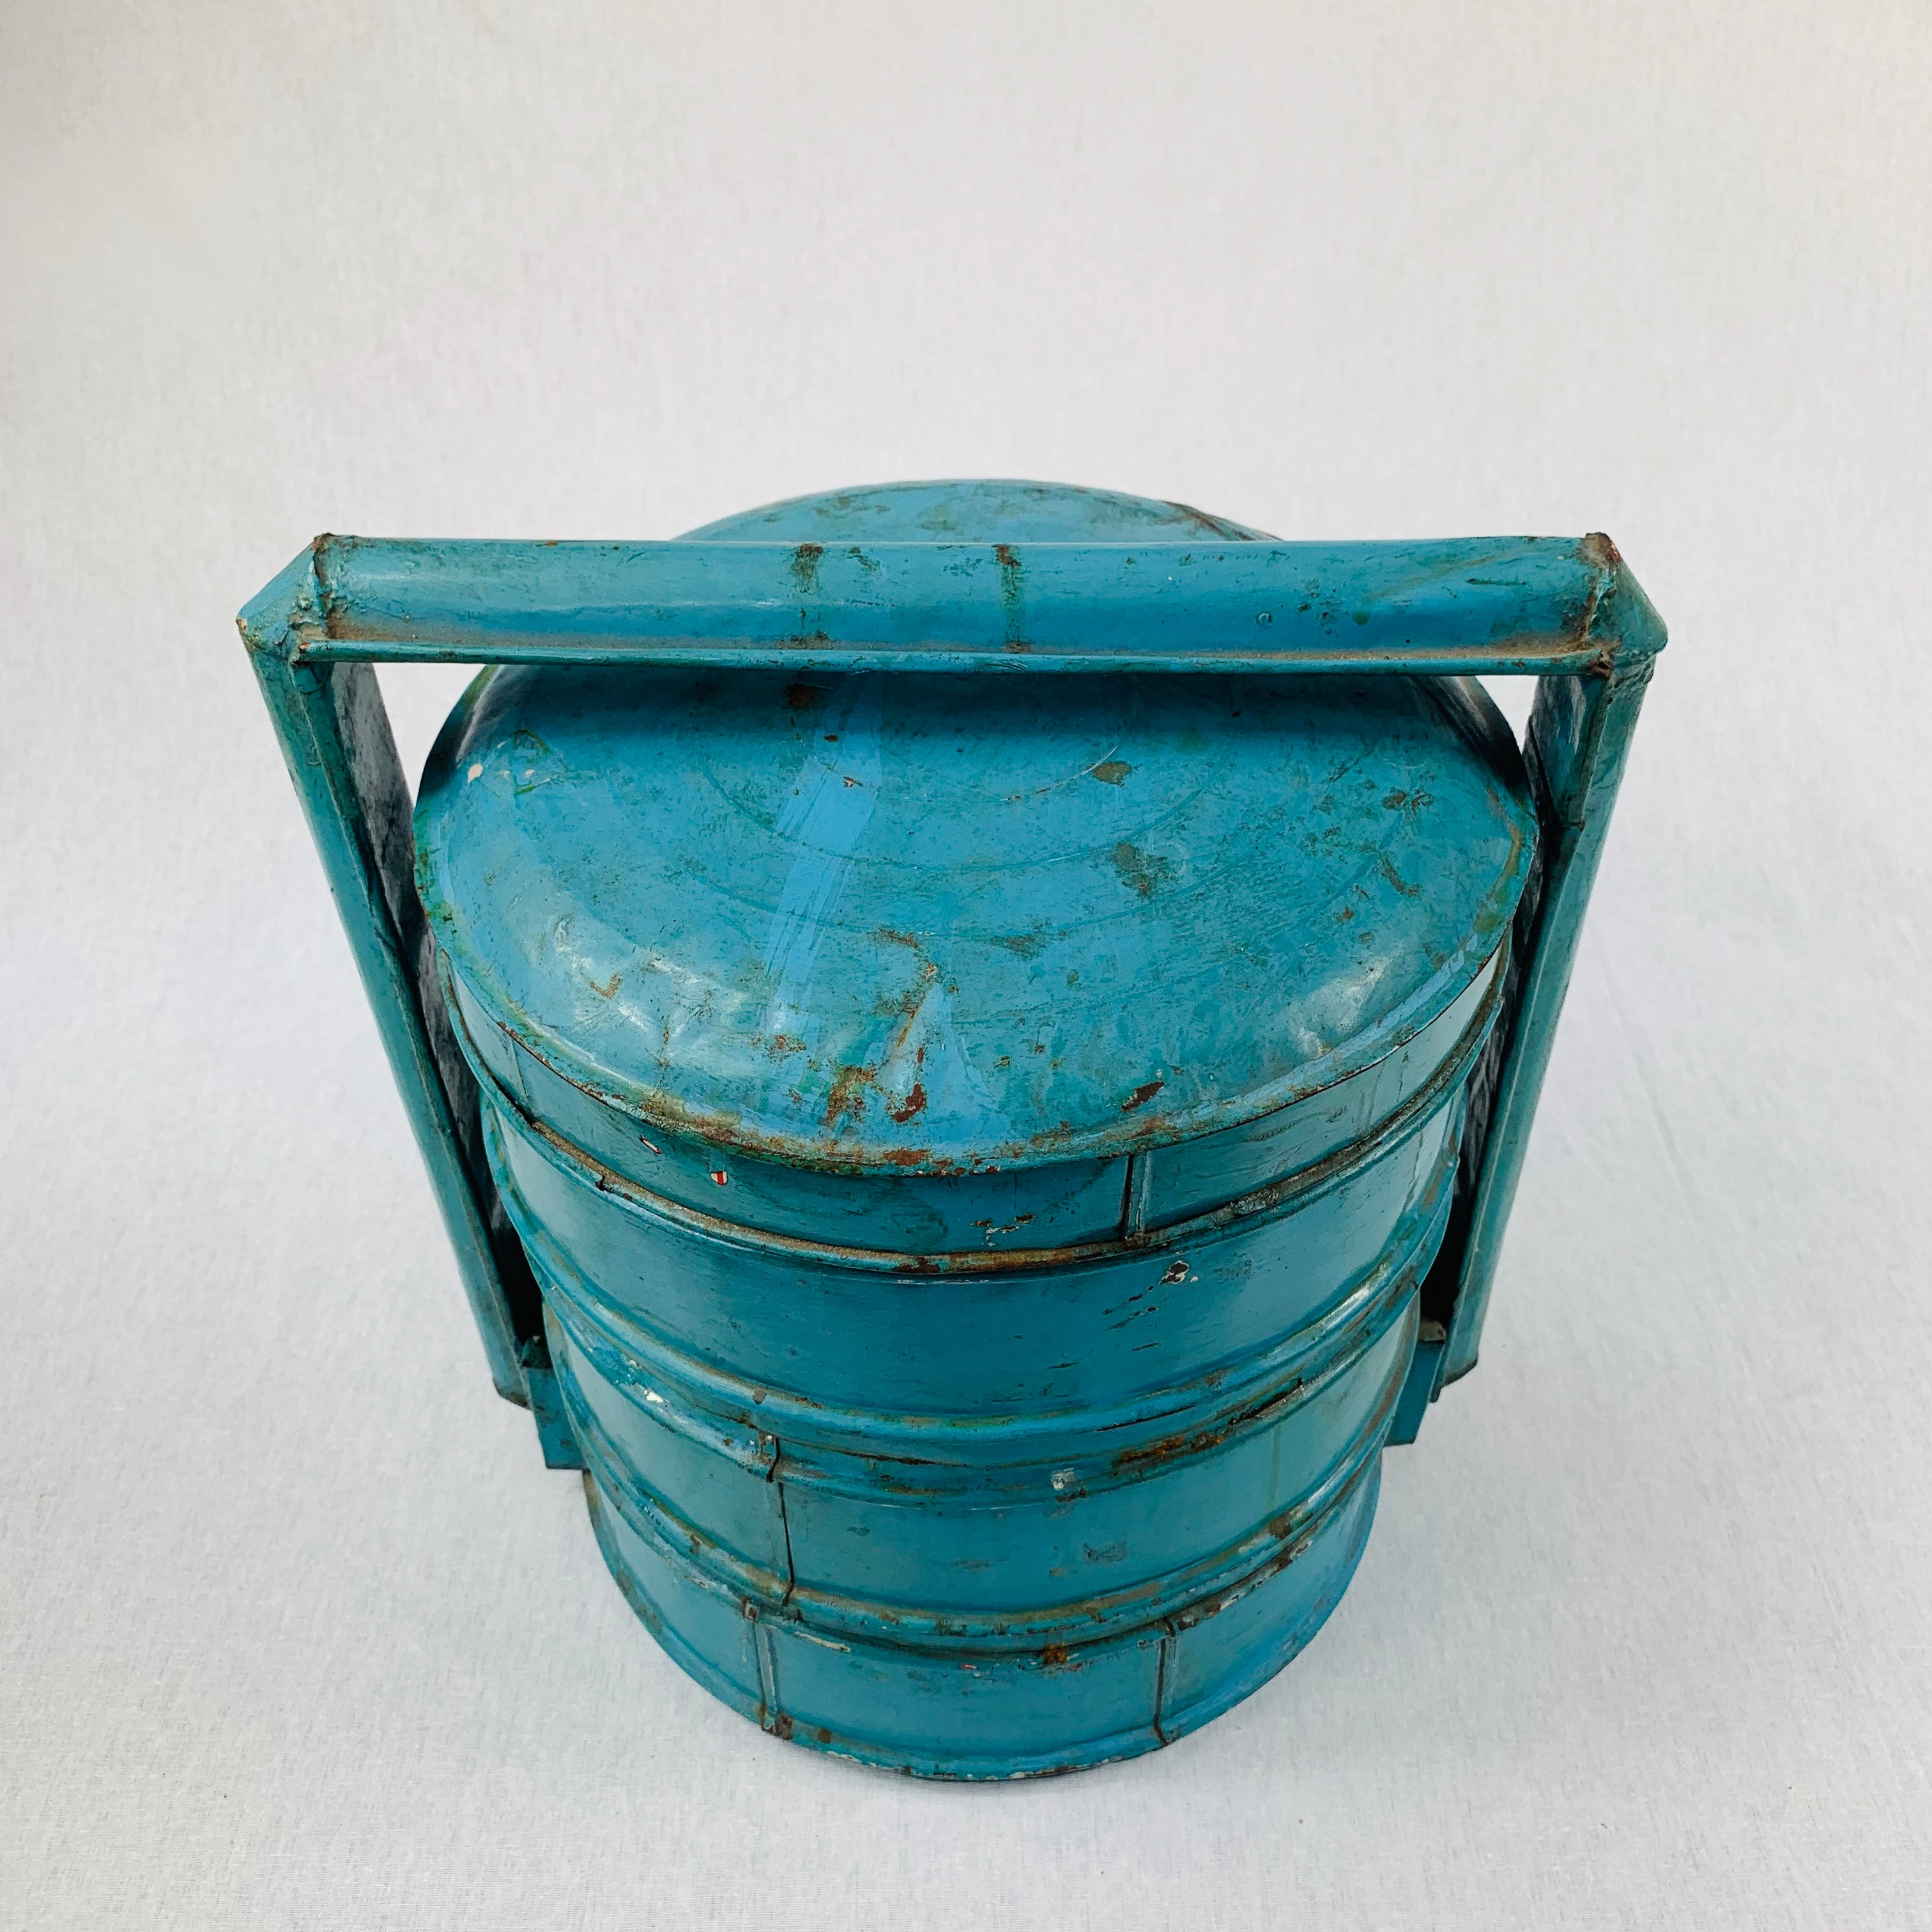 BLUE INDONESIAN VINTAGE TRADITIONAL FOOD CONTAINER